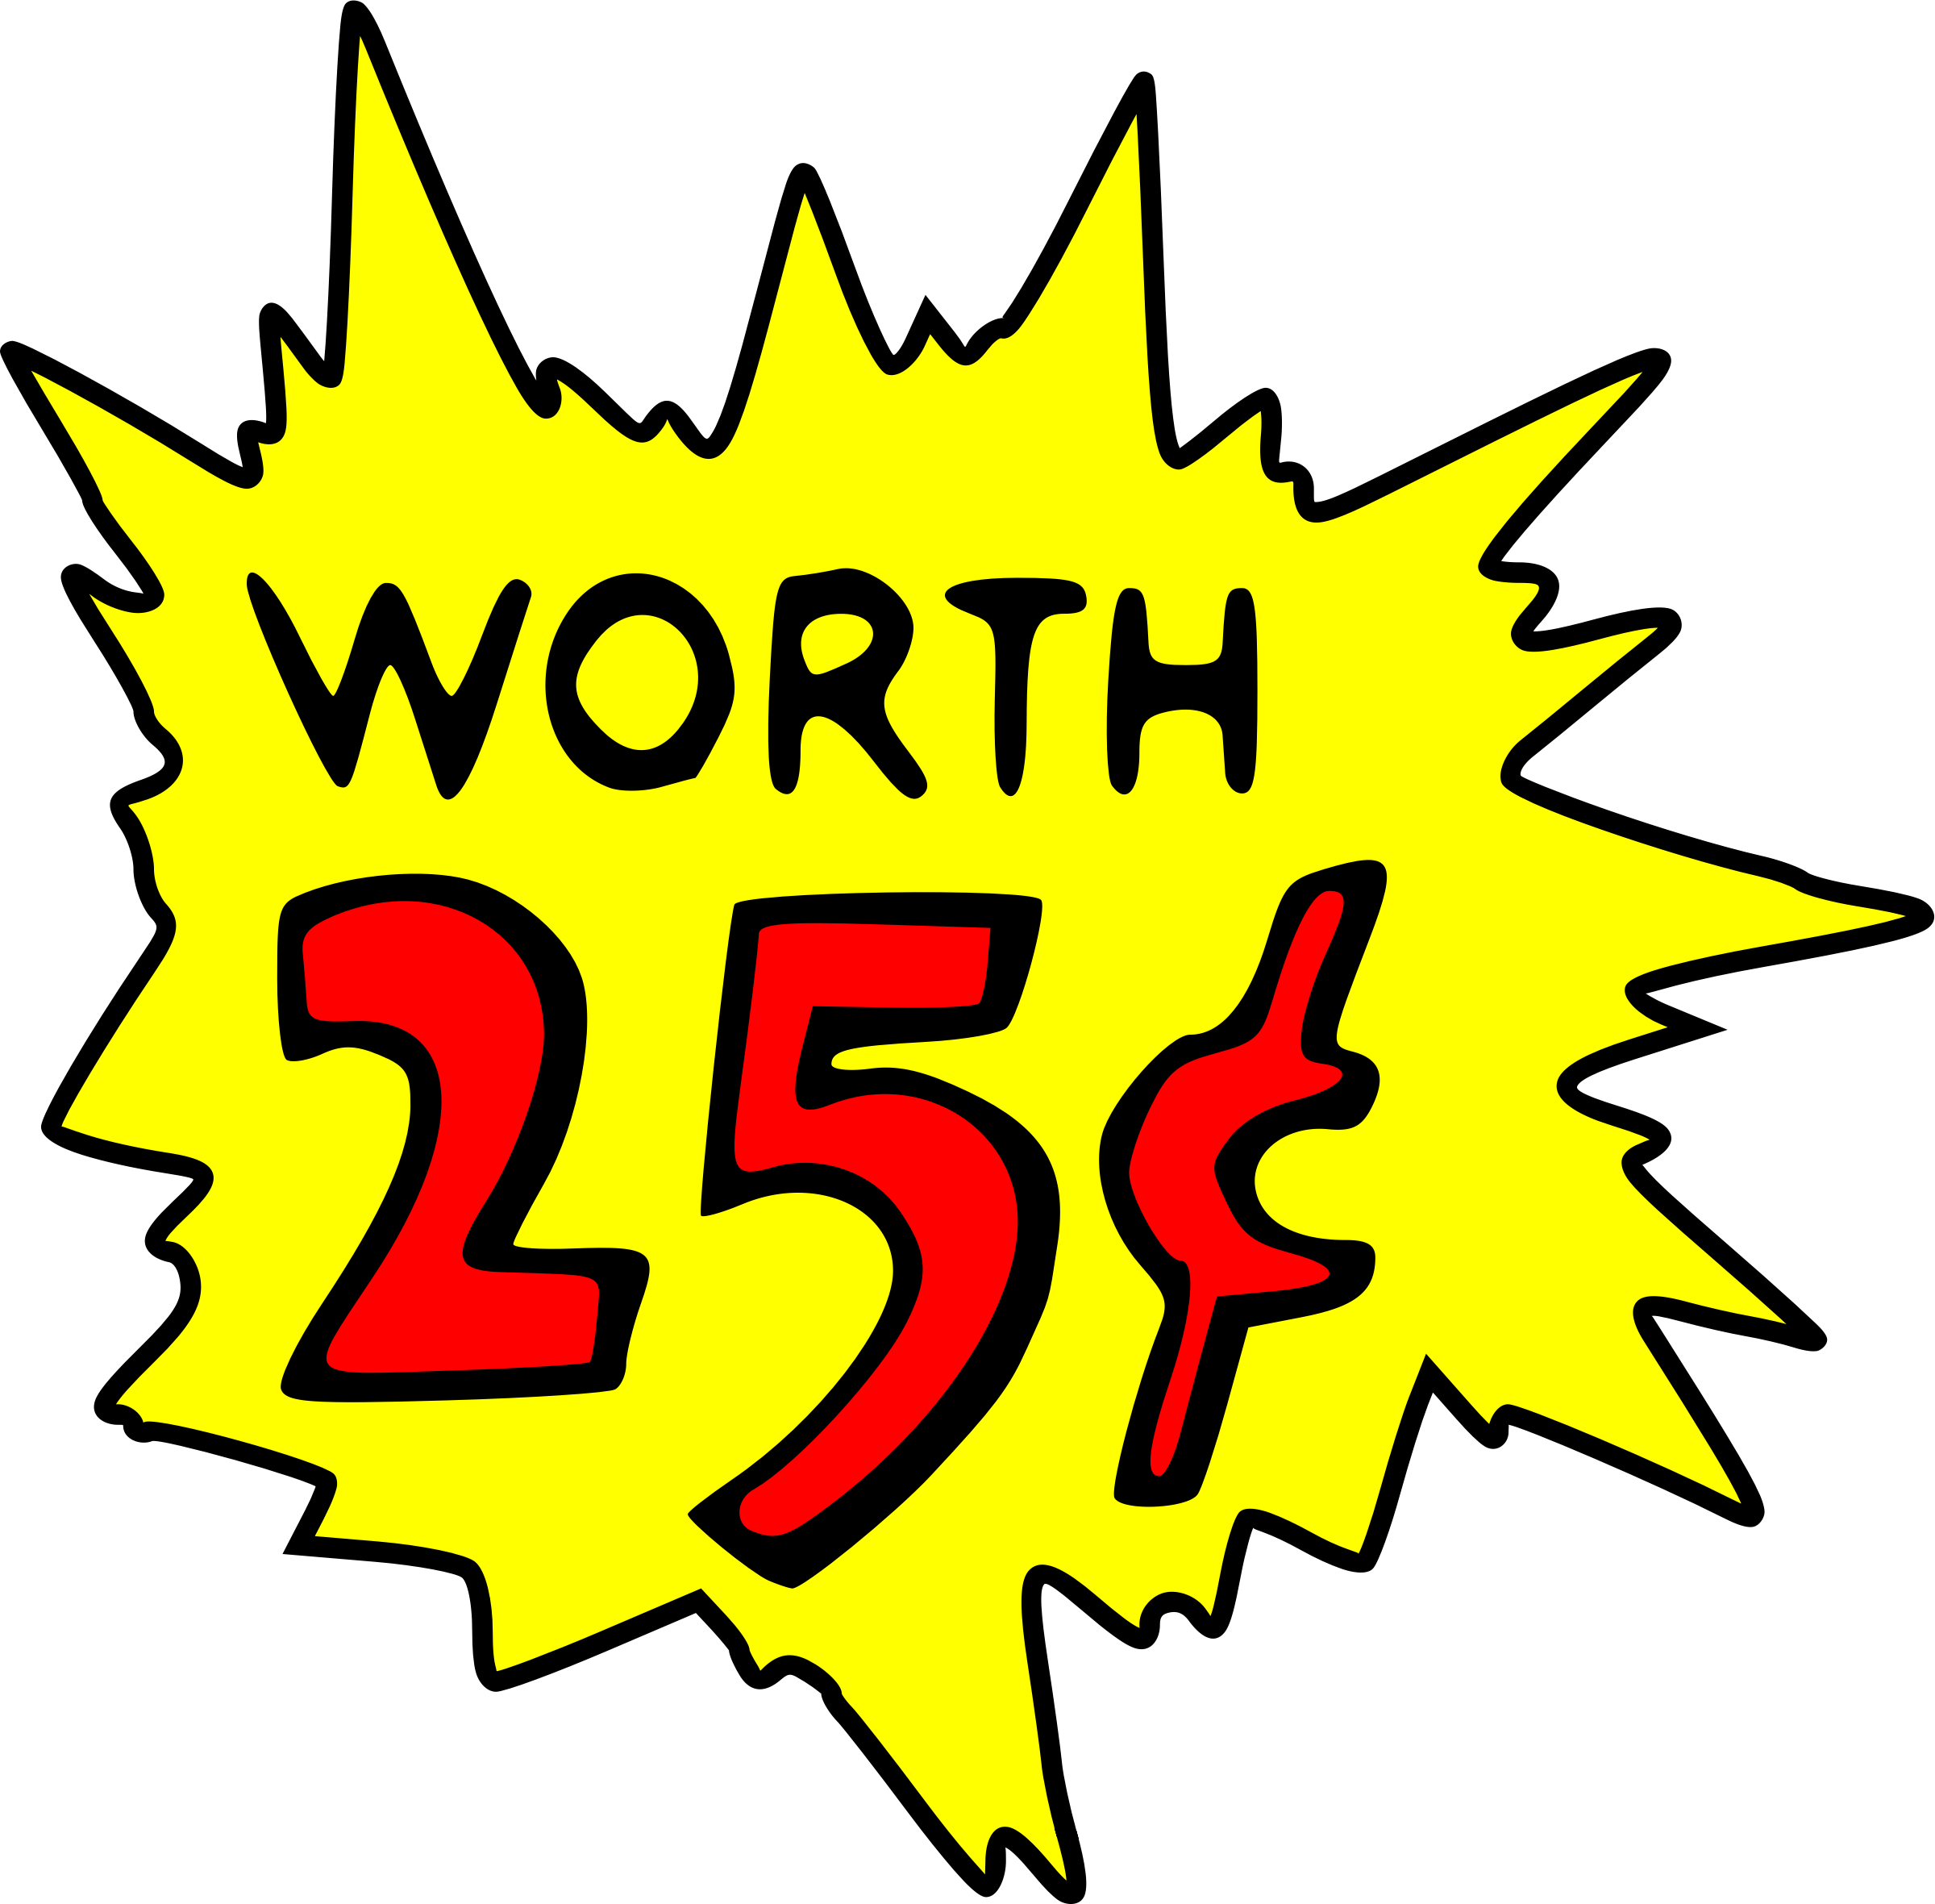 Worth 25 cent by liftarn